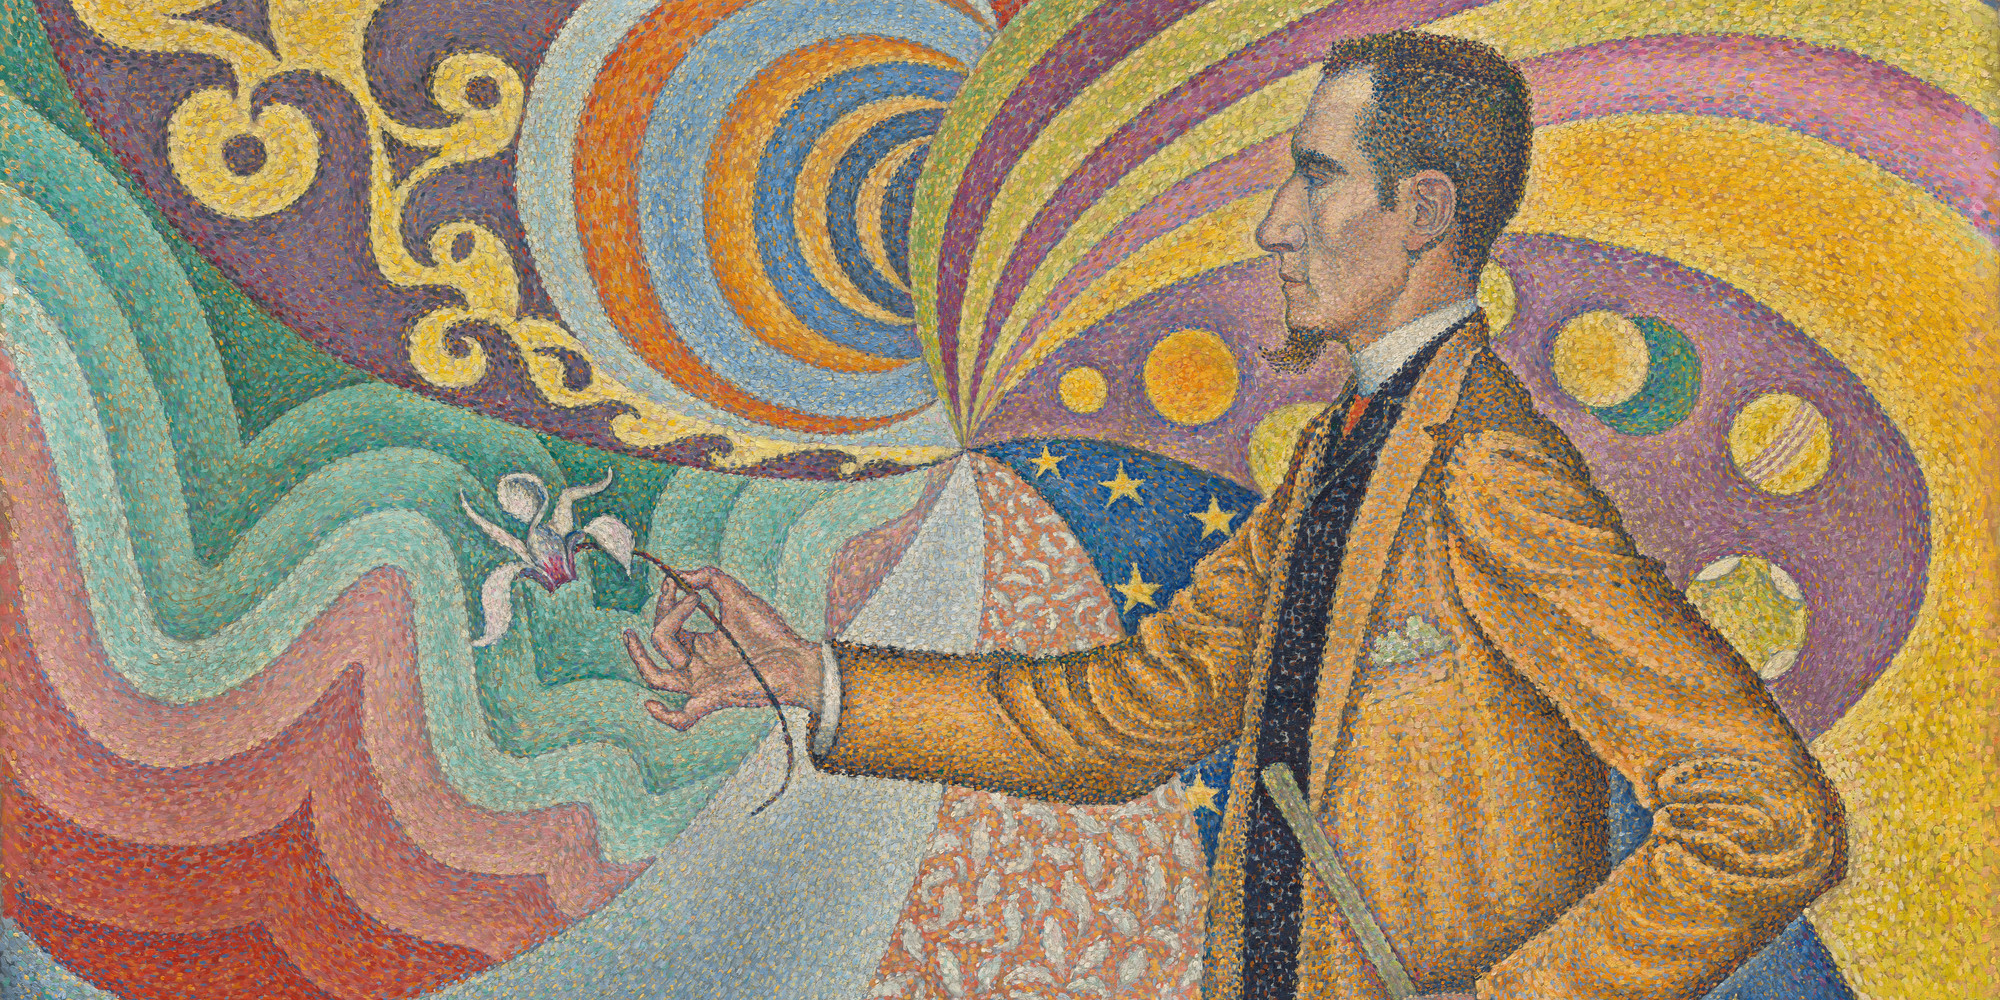 "Paul Signac. Opus 217. Against the Enamel of a Background Rhythmic with Beats and Angles, Tones, and Tints, Portrait of M. Félix Fénéon in 1890. Oil on canvas, 29 × 36 1/2"" (73.5 × 92.5 cm). Gift of Mr. and Mrs. David Rockefeller. © 2020 Artists Rights Society (ARS), New York/ADAGP, Paris"